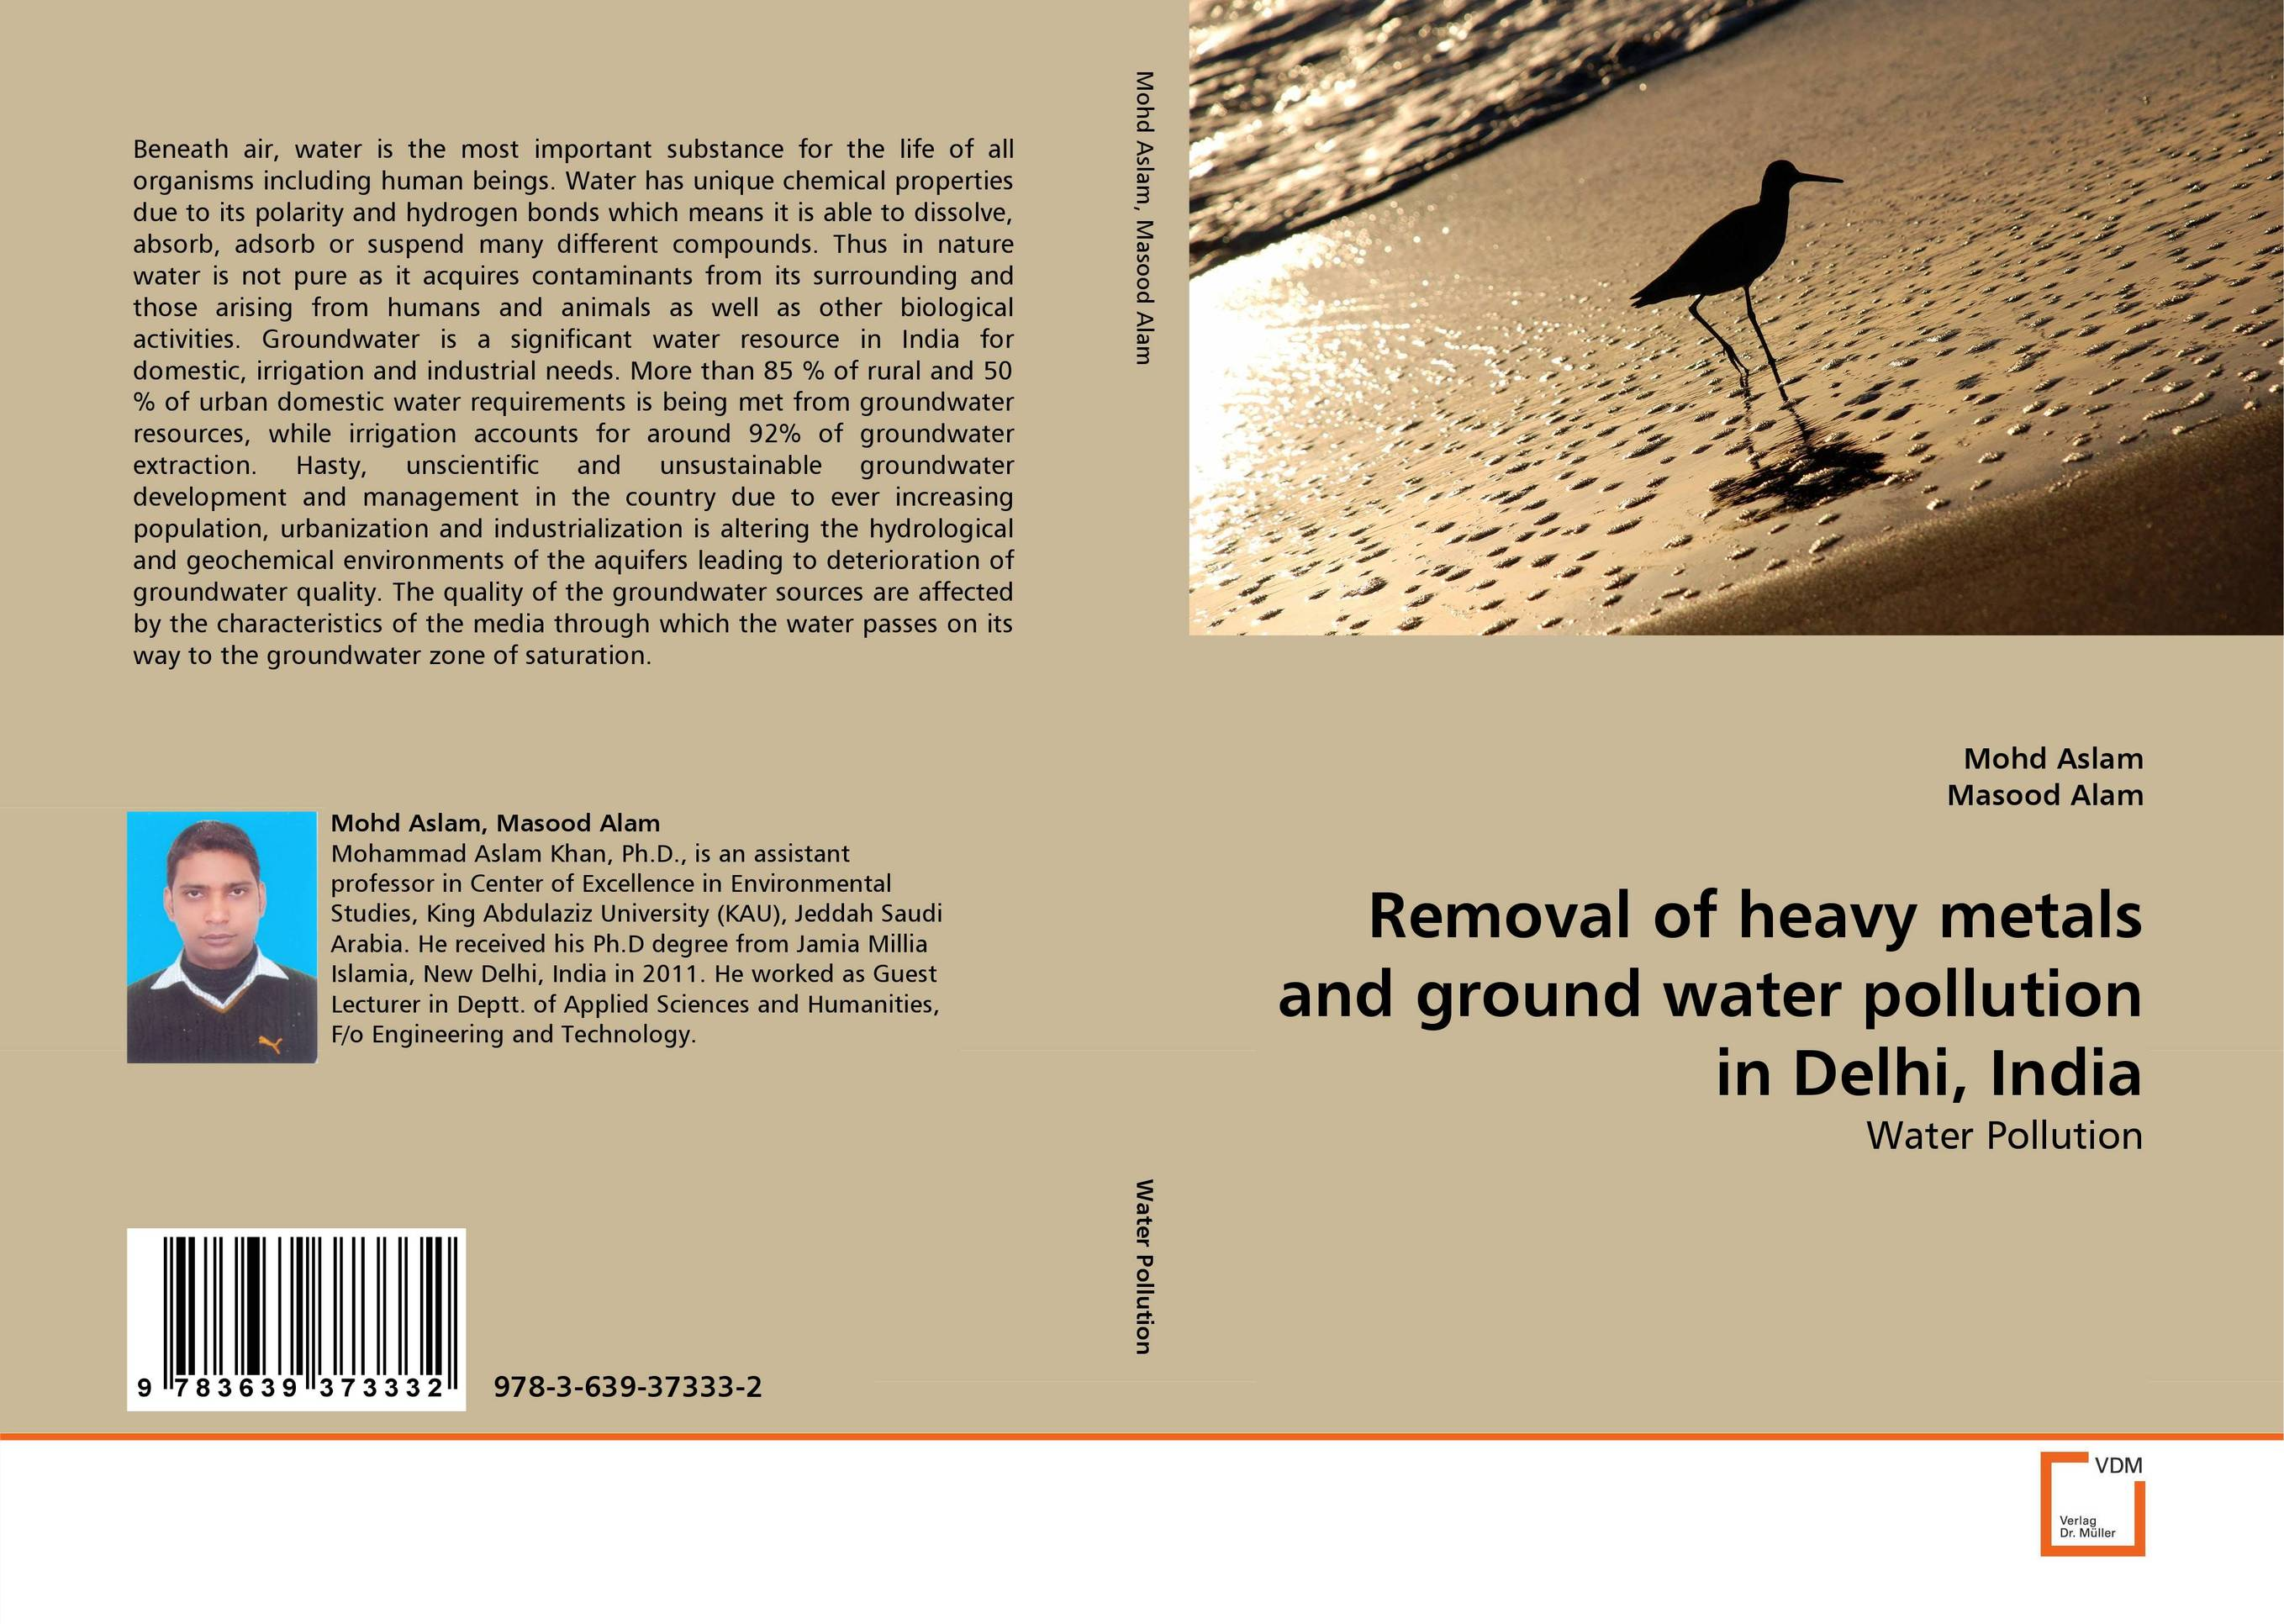 Removal of heavy metals and ground water pollution in Delhi, India купить